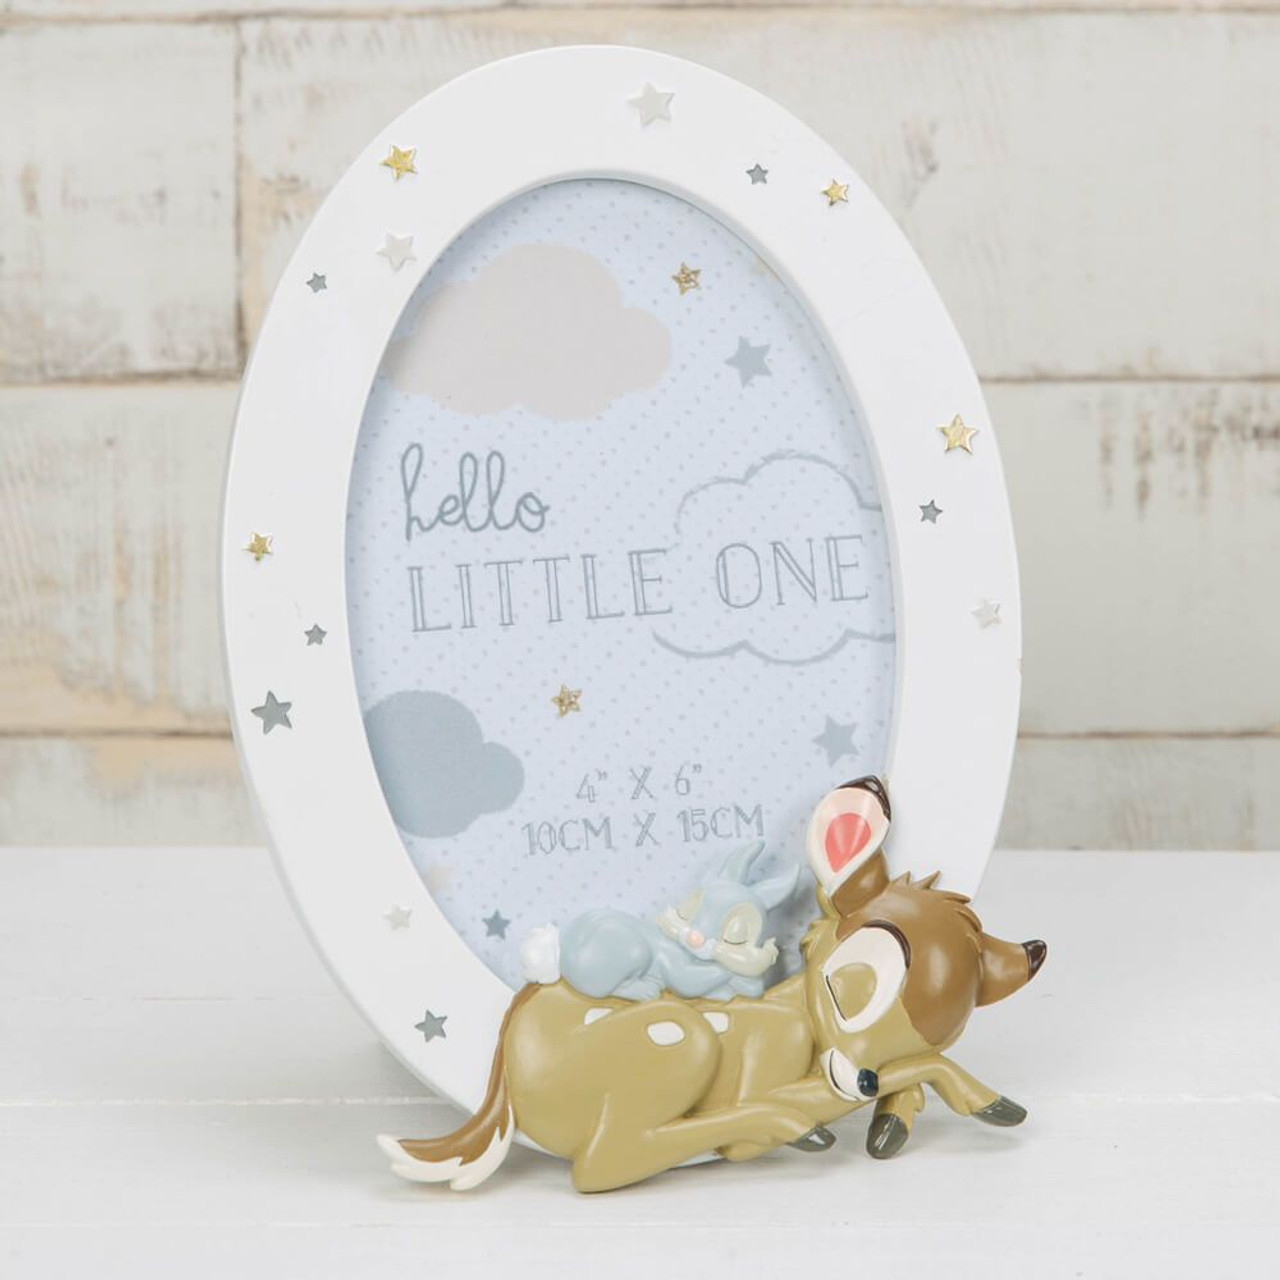 Disney Baby Magical Beginnings Bambi Photo Frame at Baby Barn Discounts Welcome a newborn to the world with a commemorative photo.